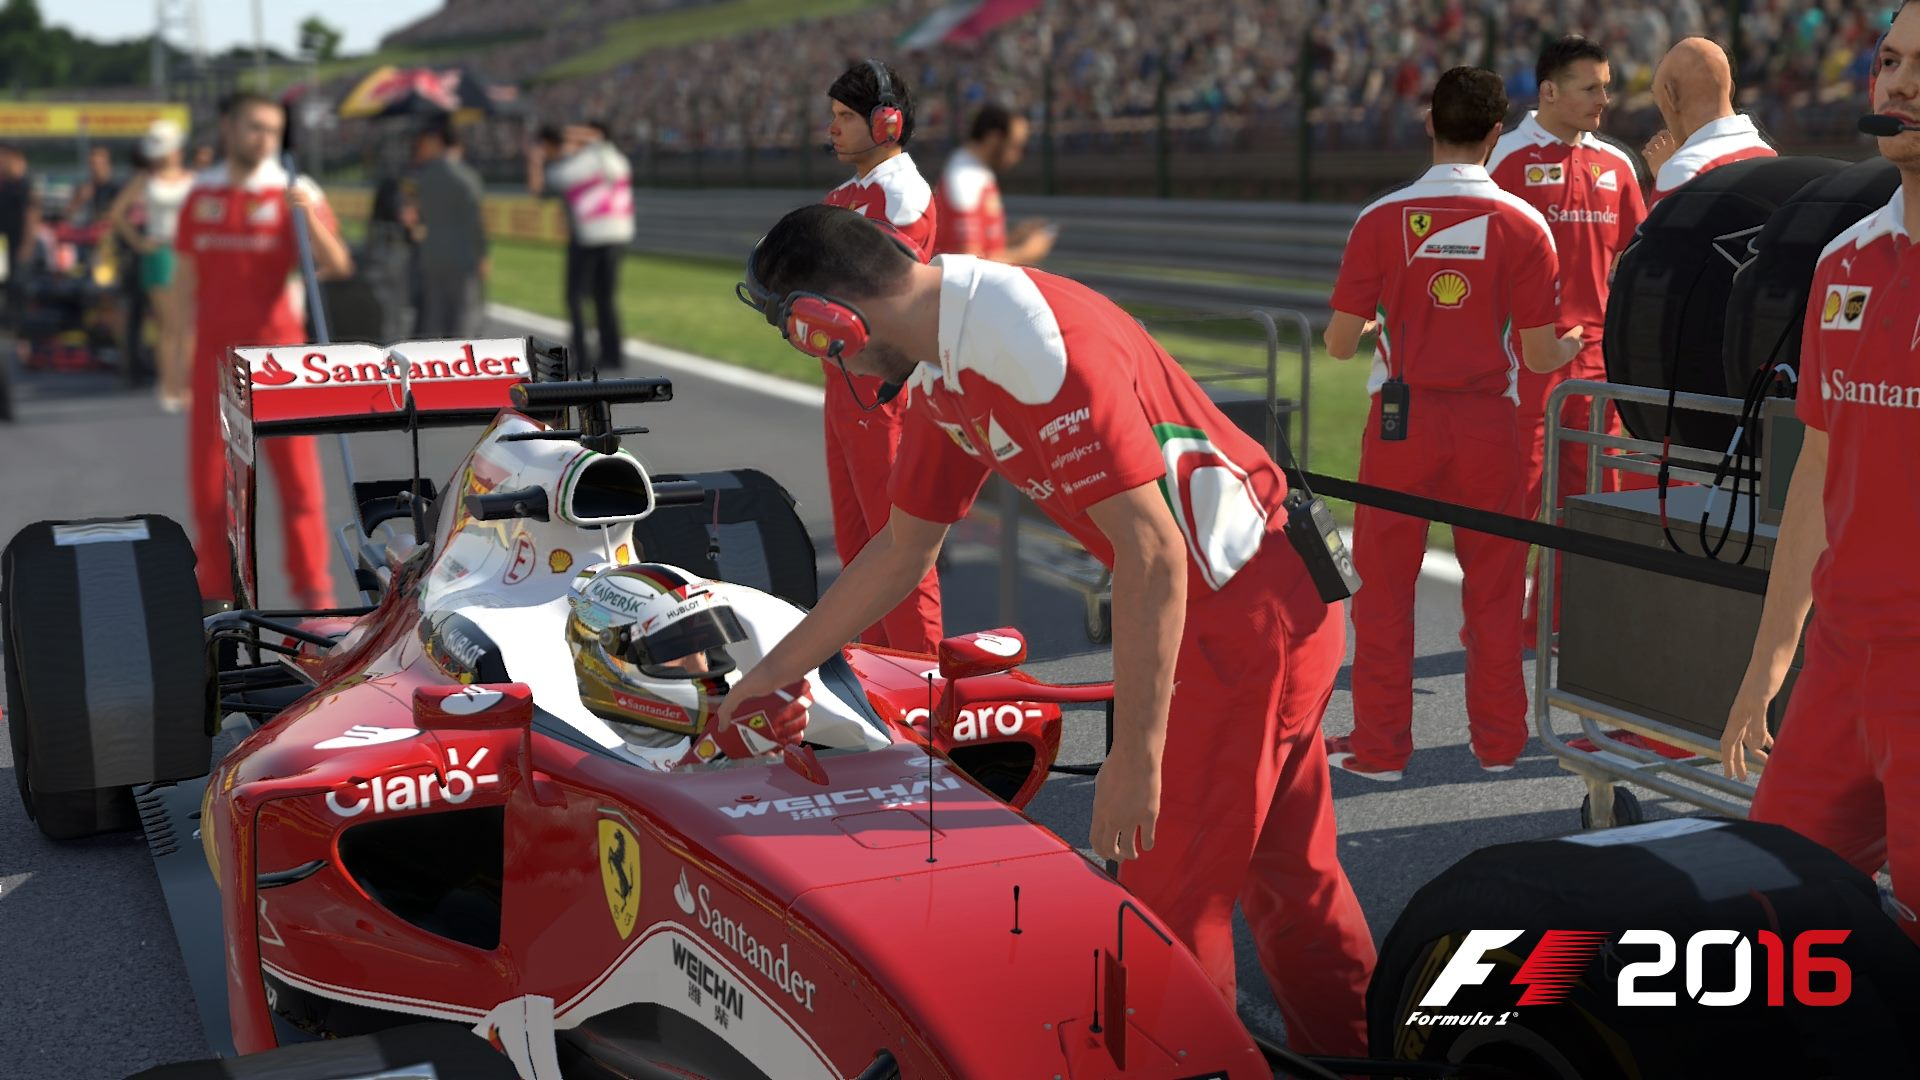 F1 2016 pit stop